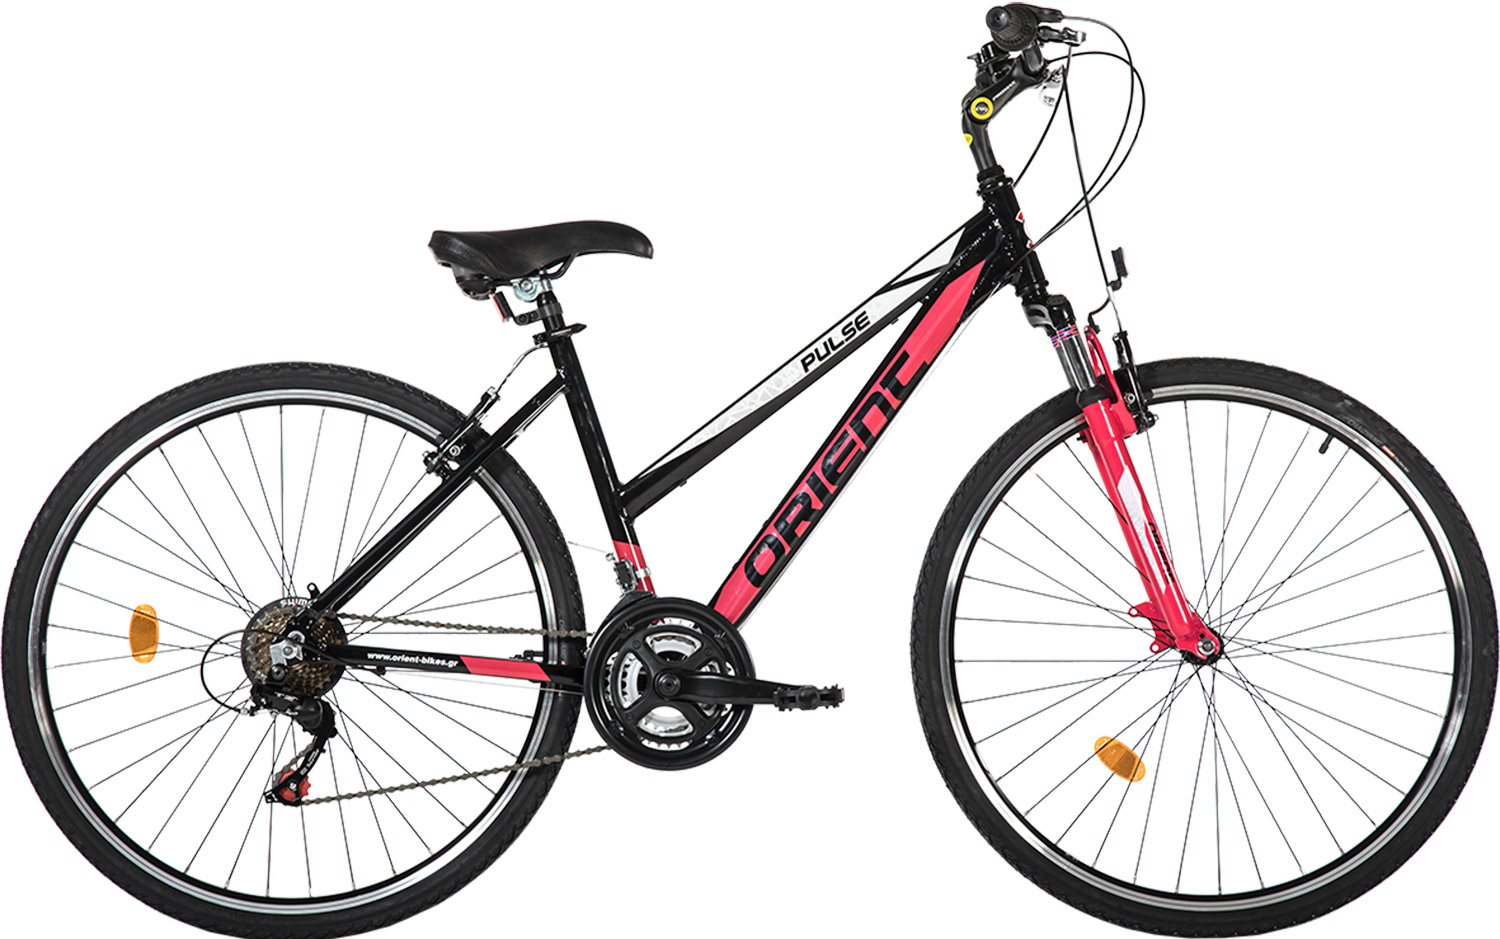 PULSE lady 21sp. bike image